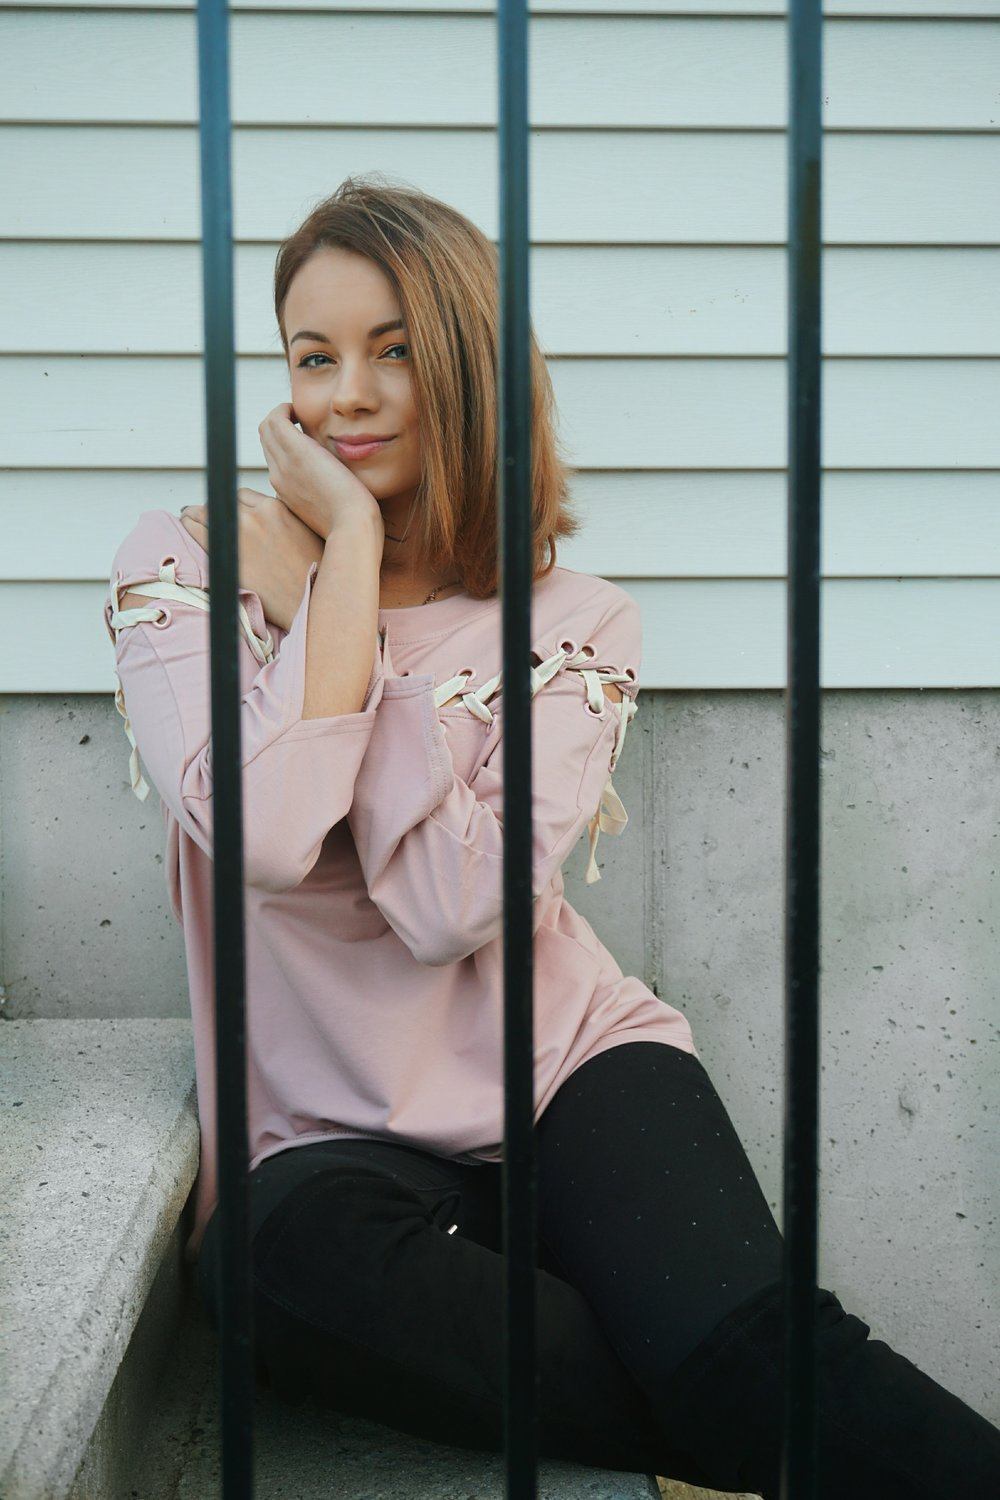 A blogger sitting on a steps, wearing a pink top, black jeans, and knee-high boots.